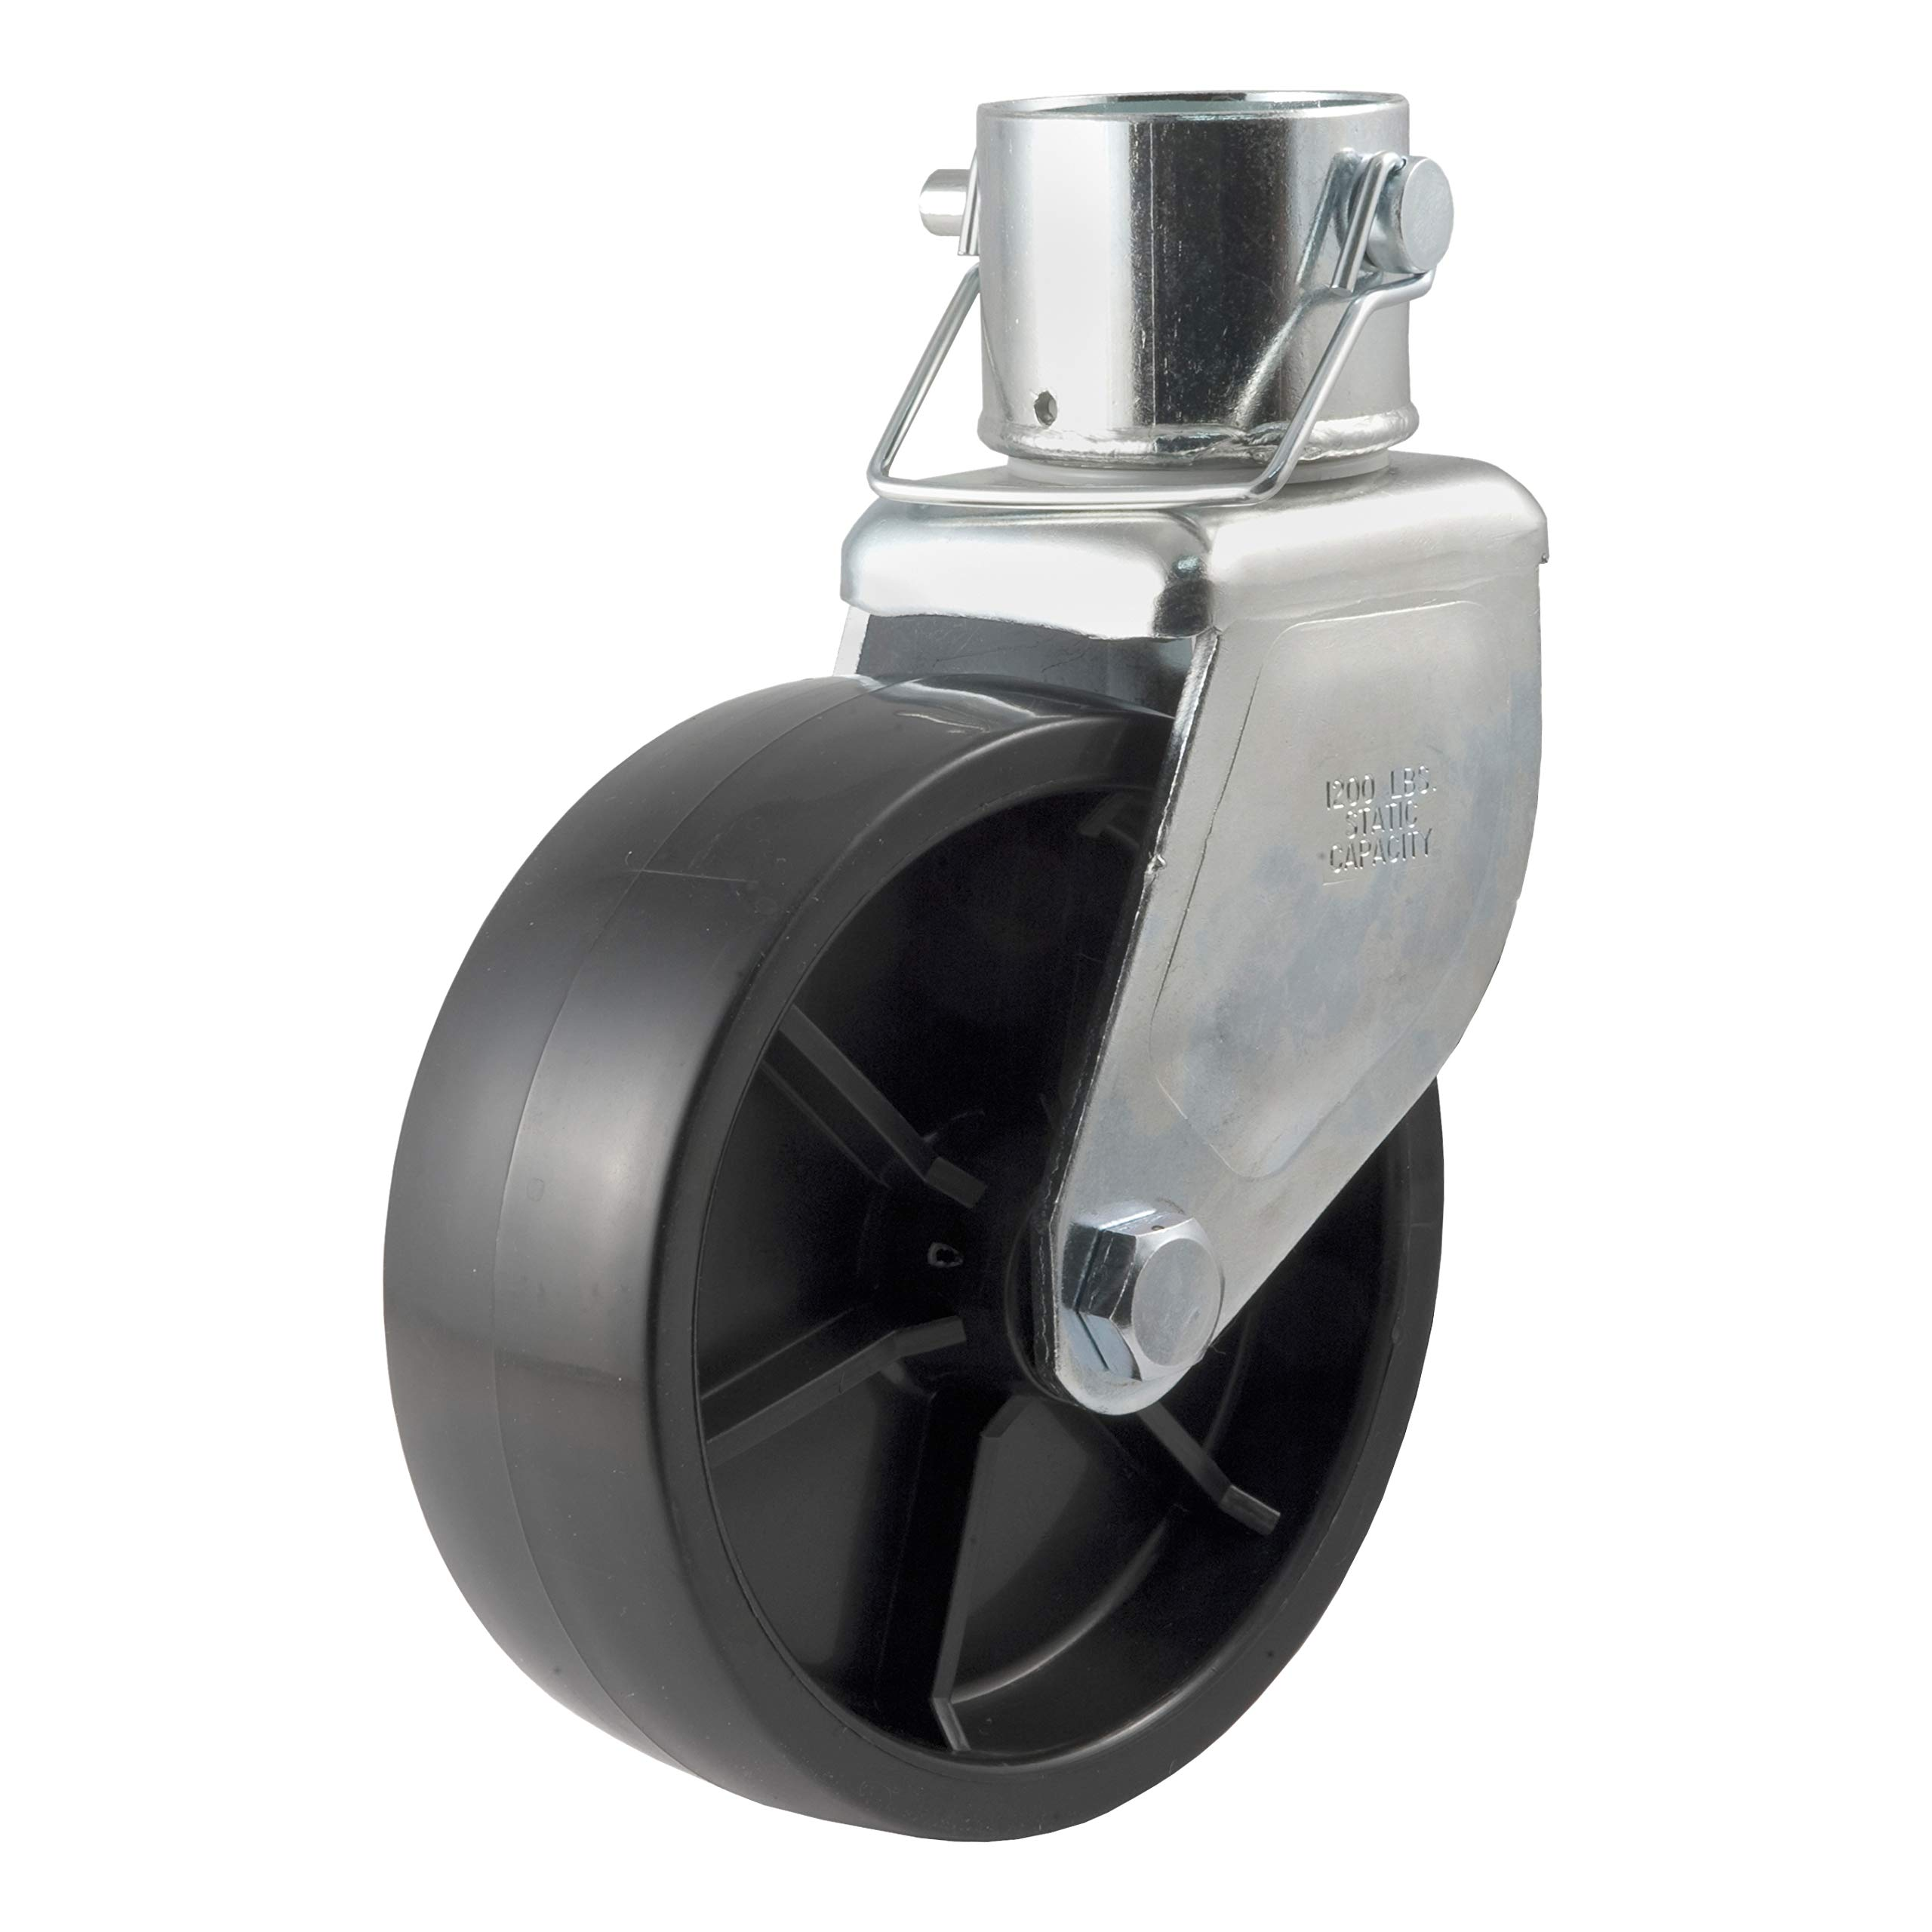 CURT 28276 6-Inch Caster Trailer Jack Wheel Replacement, Fits 2-Inch Tube, 1,200 lbs. by CURT